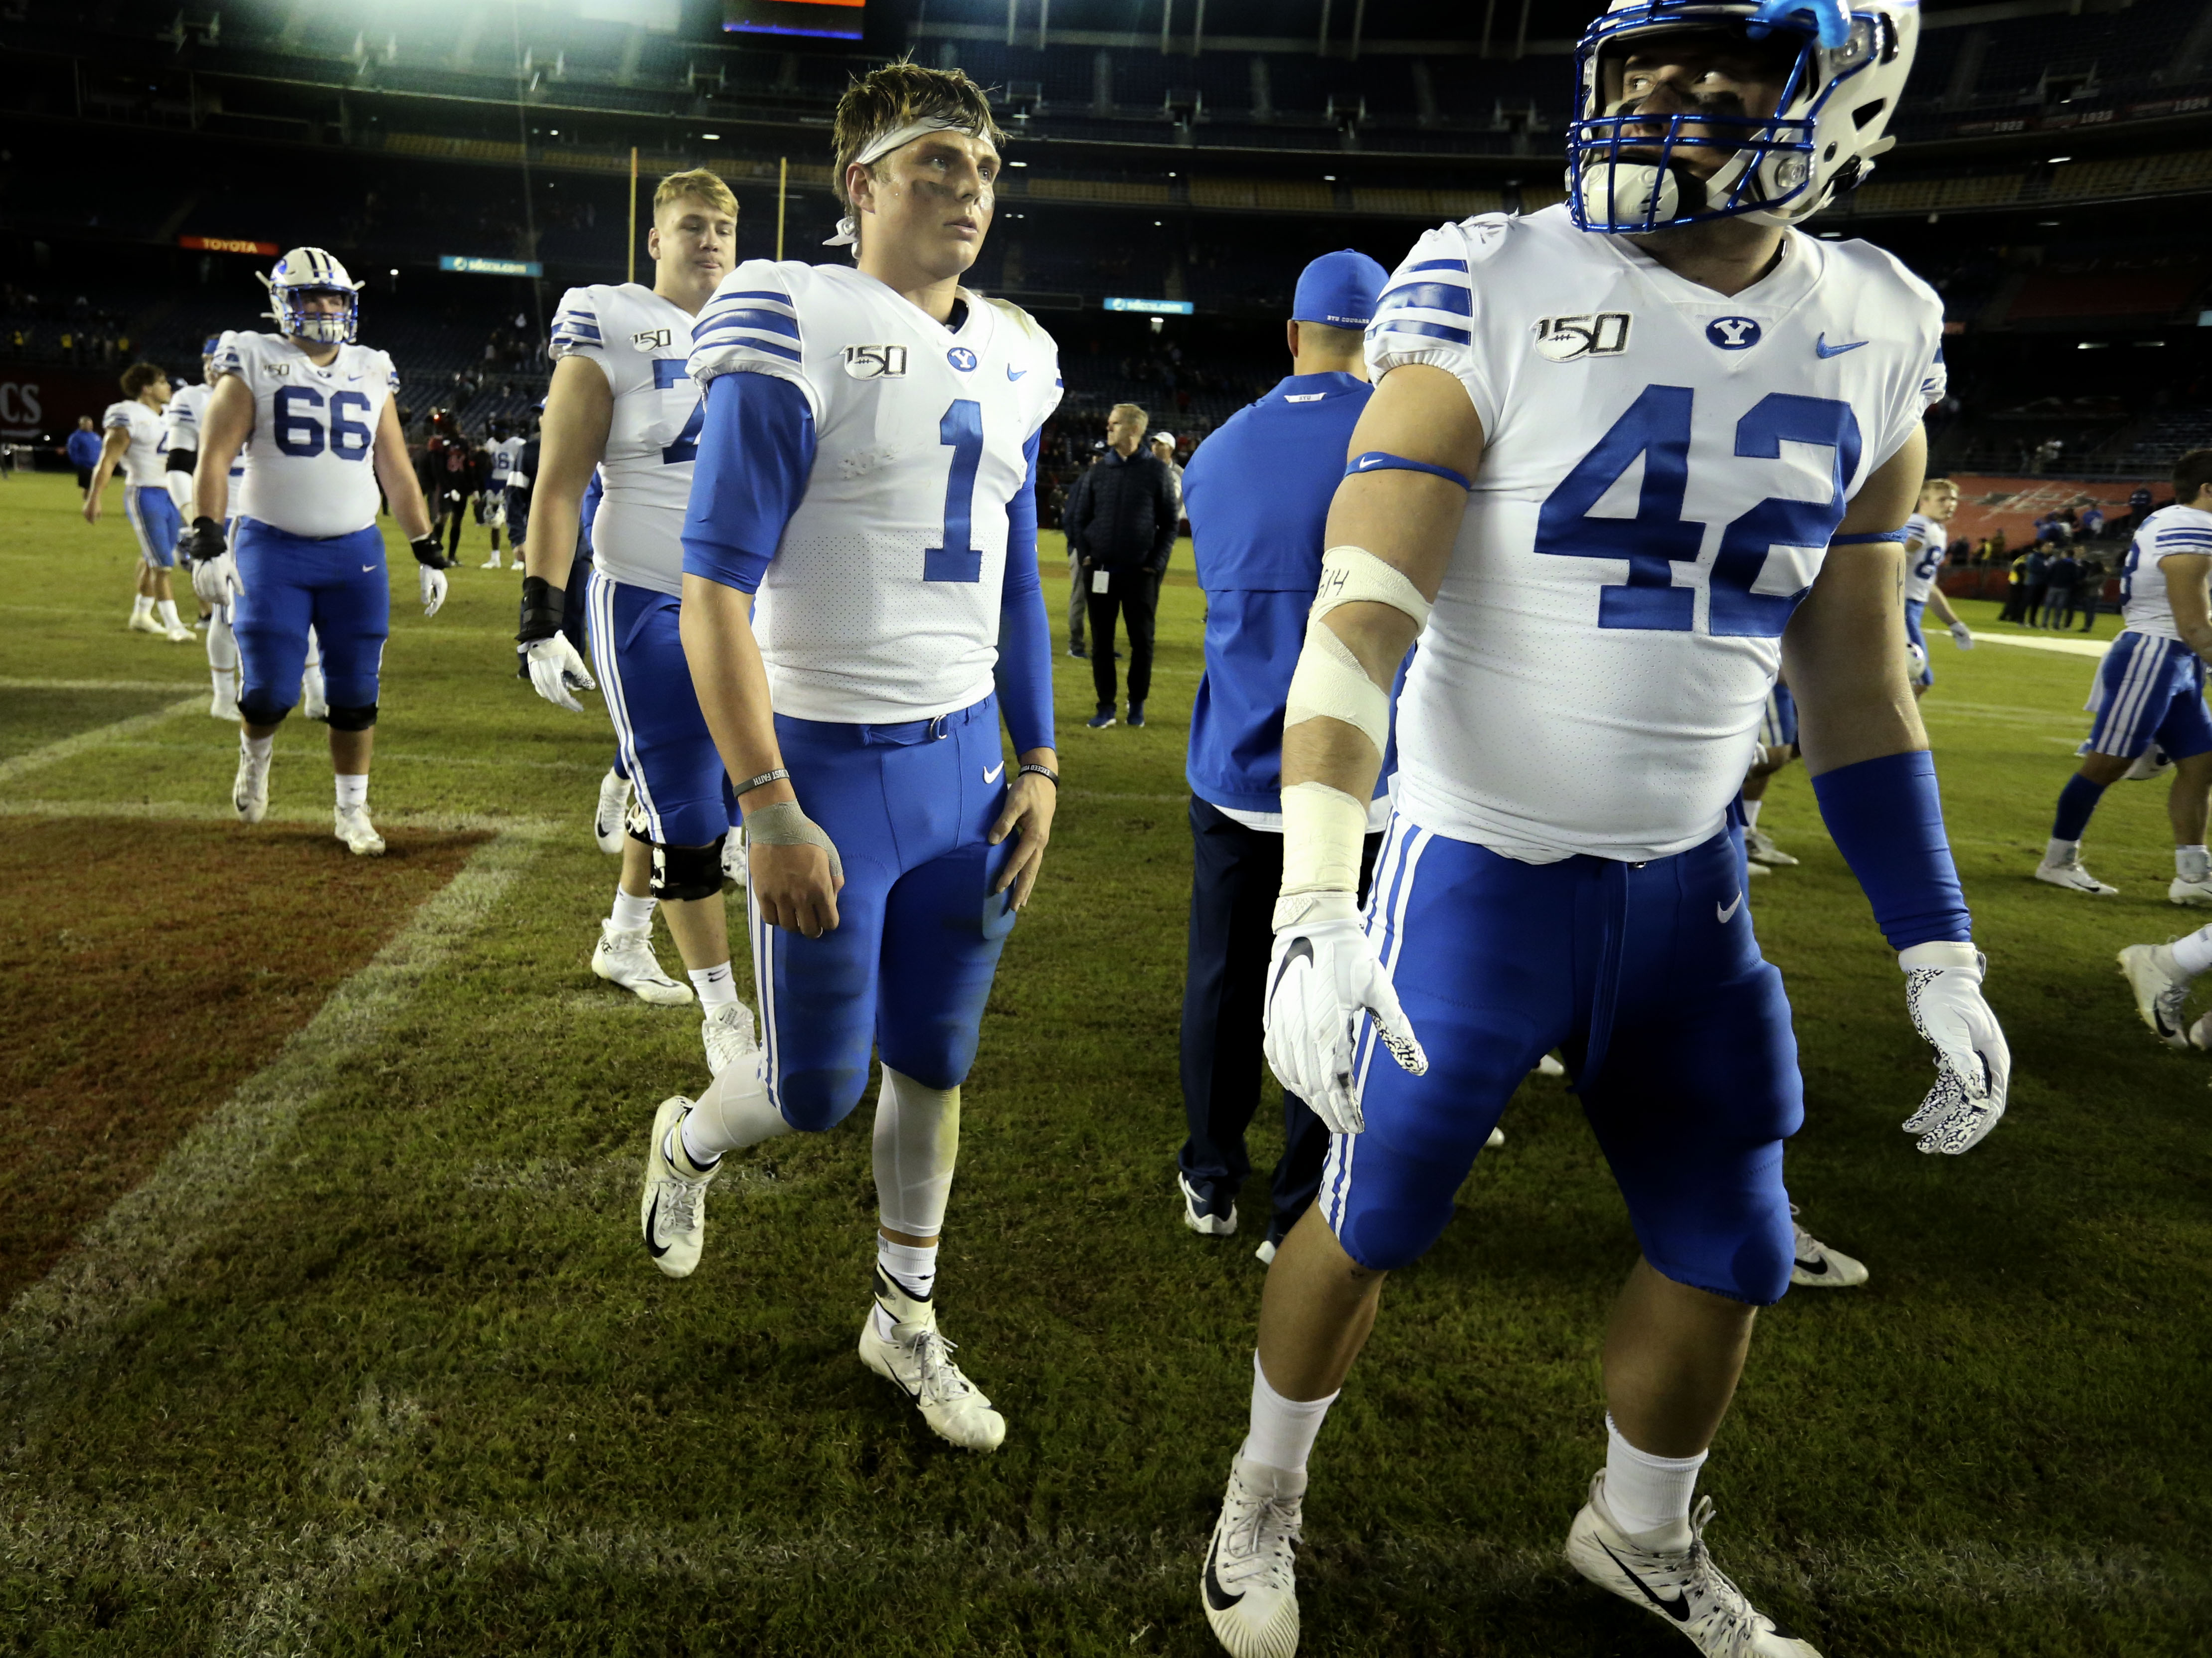 BYU football players, including quarterback Zach Wilson (1) and tight end Kyle Griffitts (42), leave the field after losing to the San Diego State Aztecs at SDCCU Stadium in San Diego on Saturday, Nov. 30, 2019.